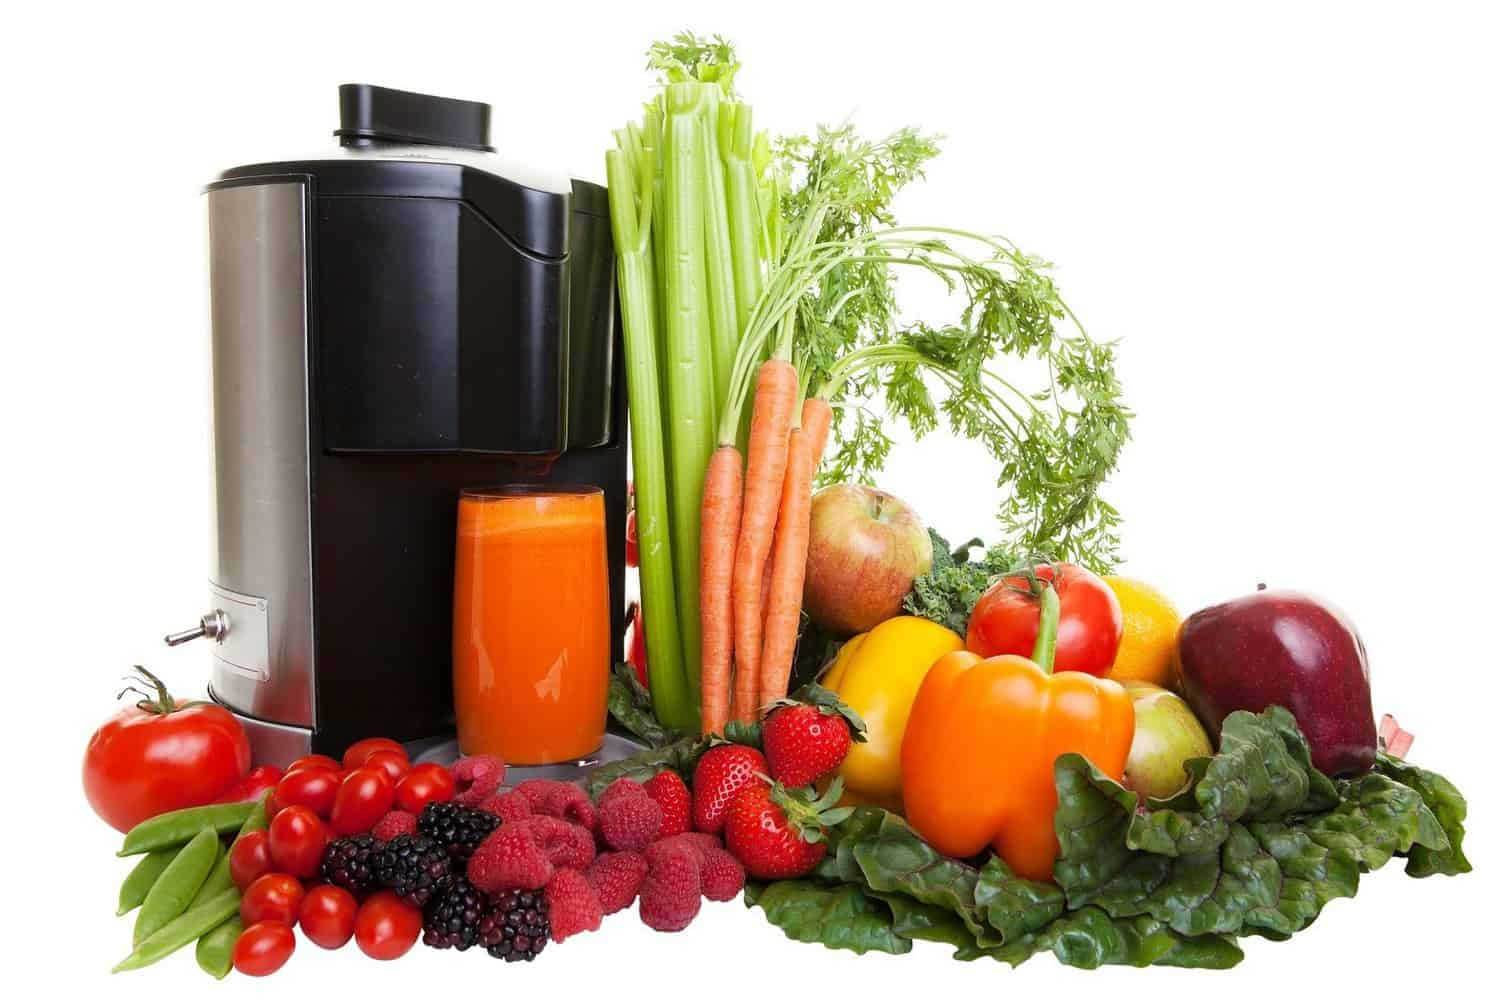 A juicer surrounded by fruit and vegetables.